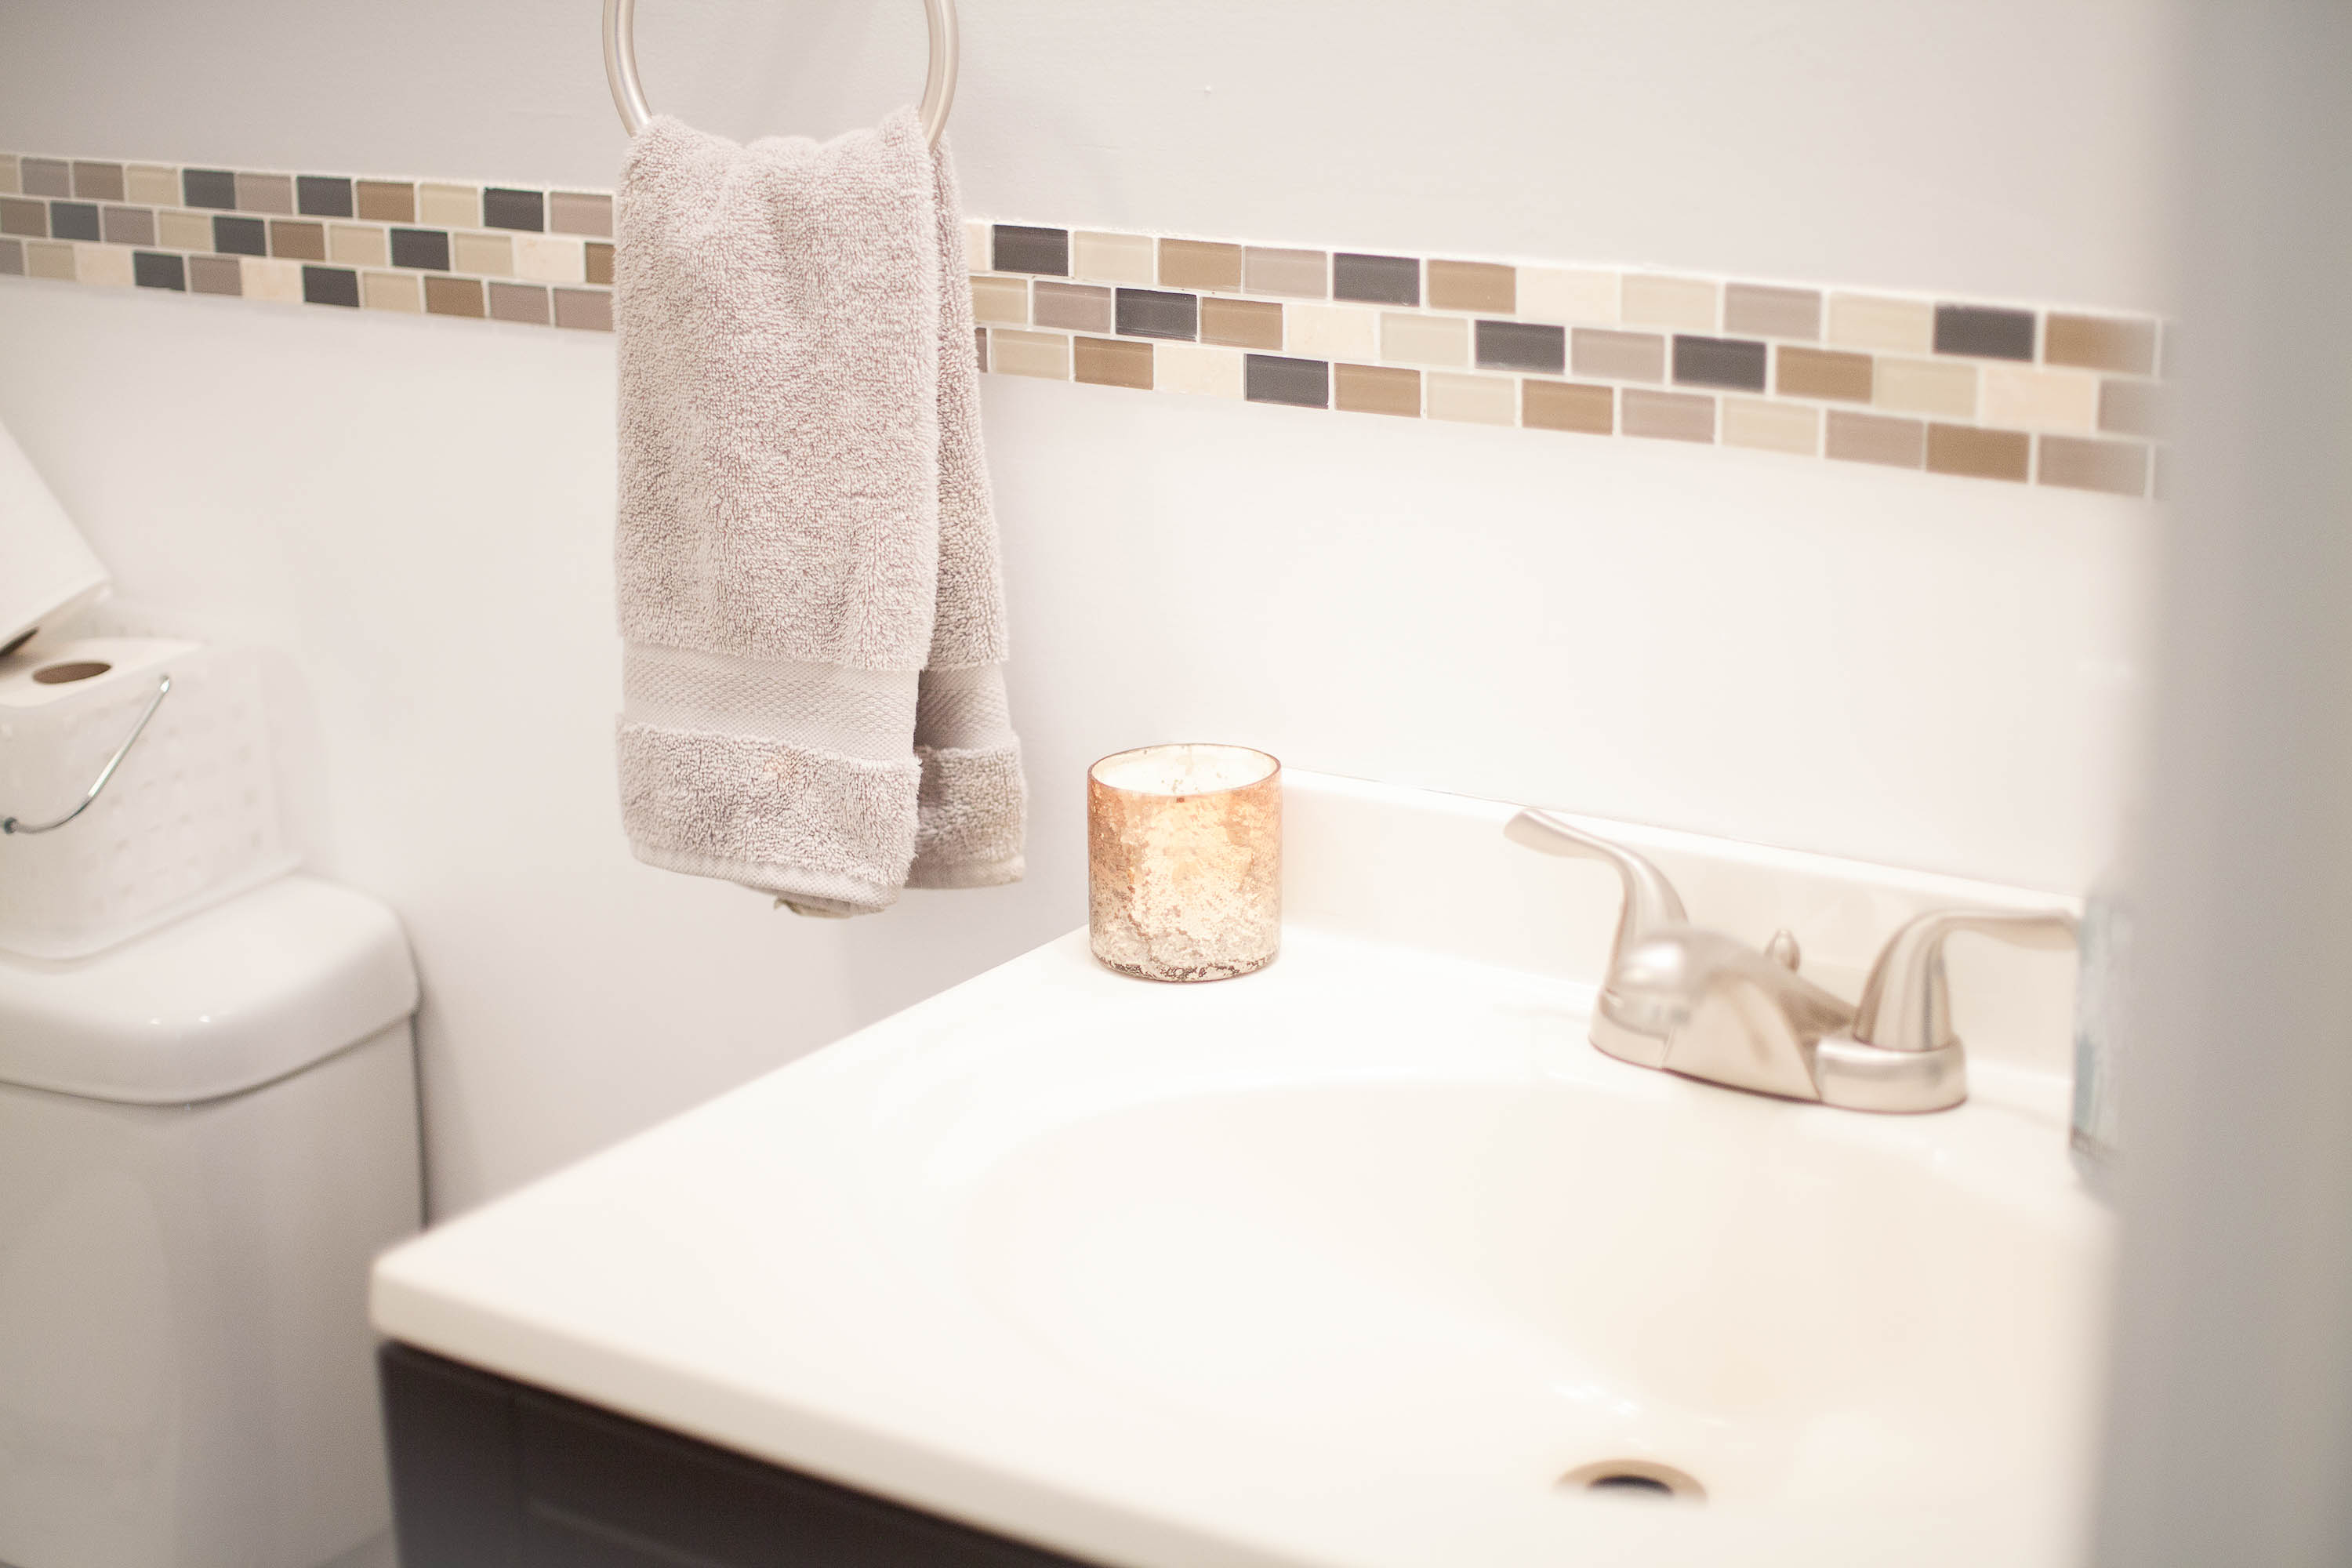 How To Maximize Space In A Small Bathroom | Coffee With Summer